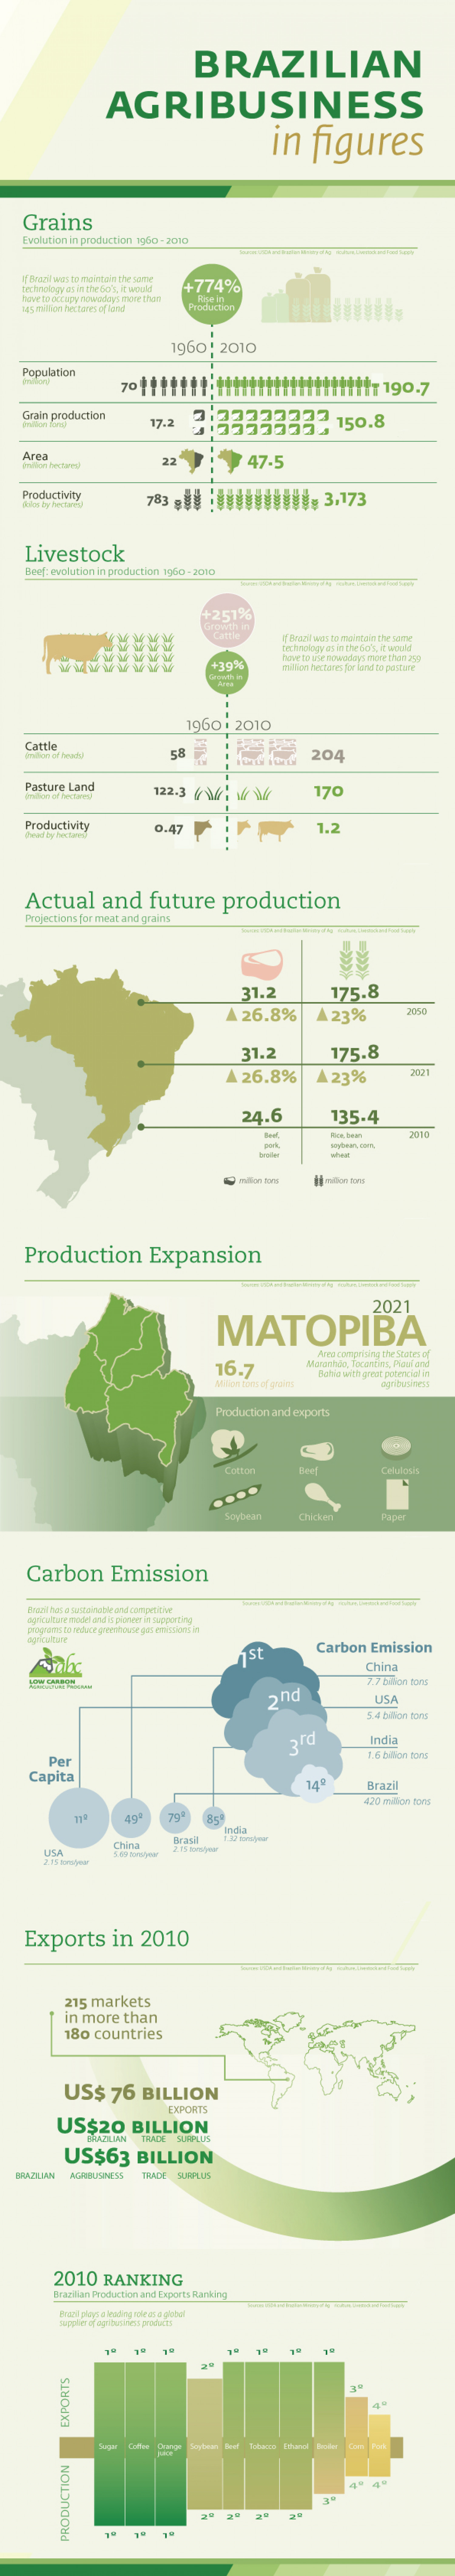 Brazilian Agribussiness Infographic